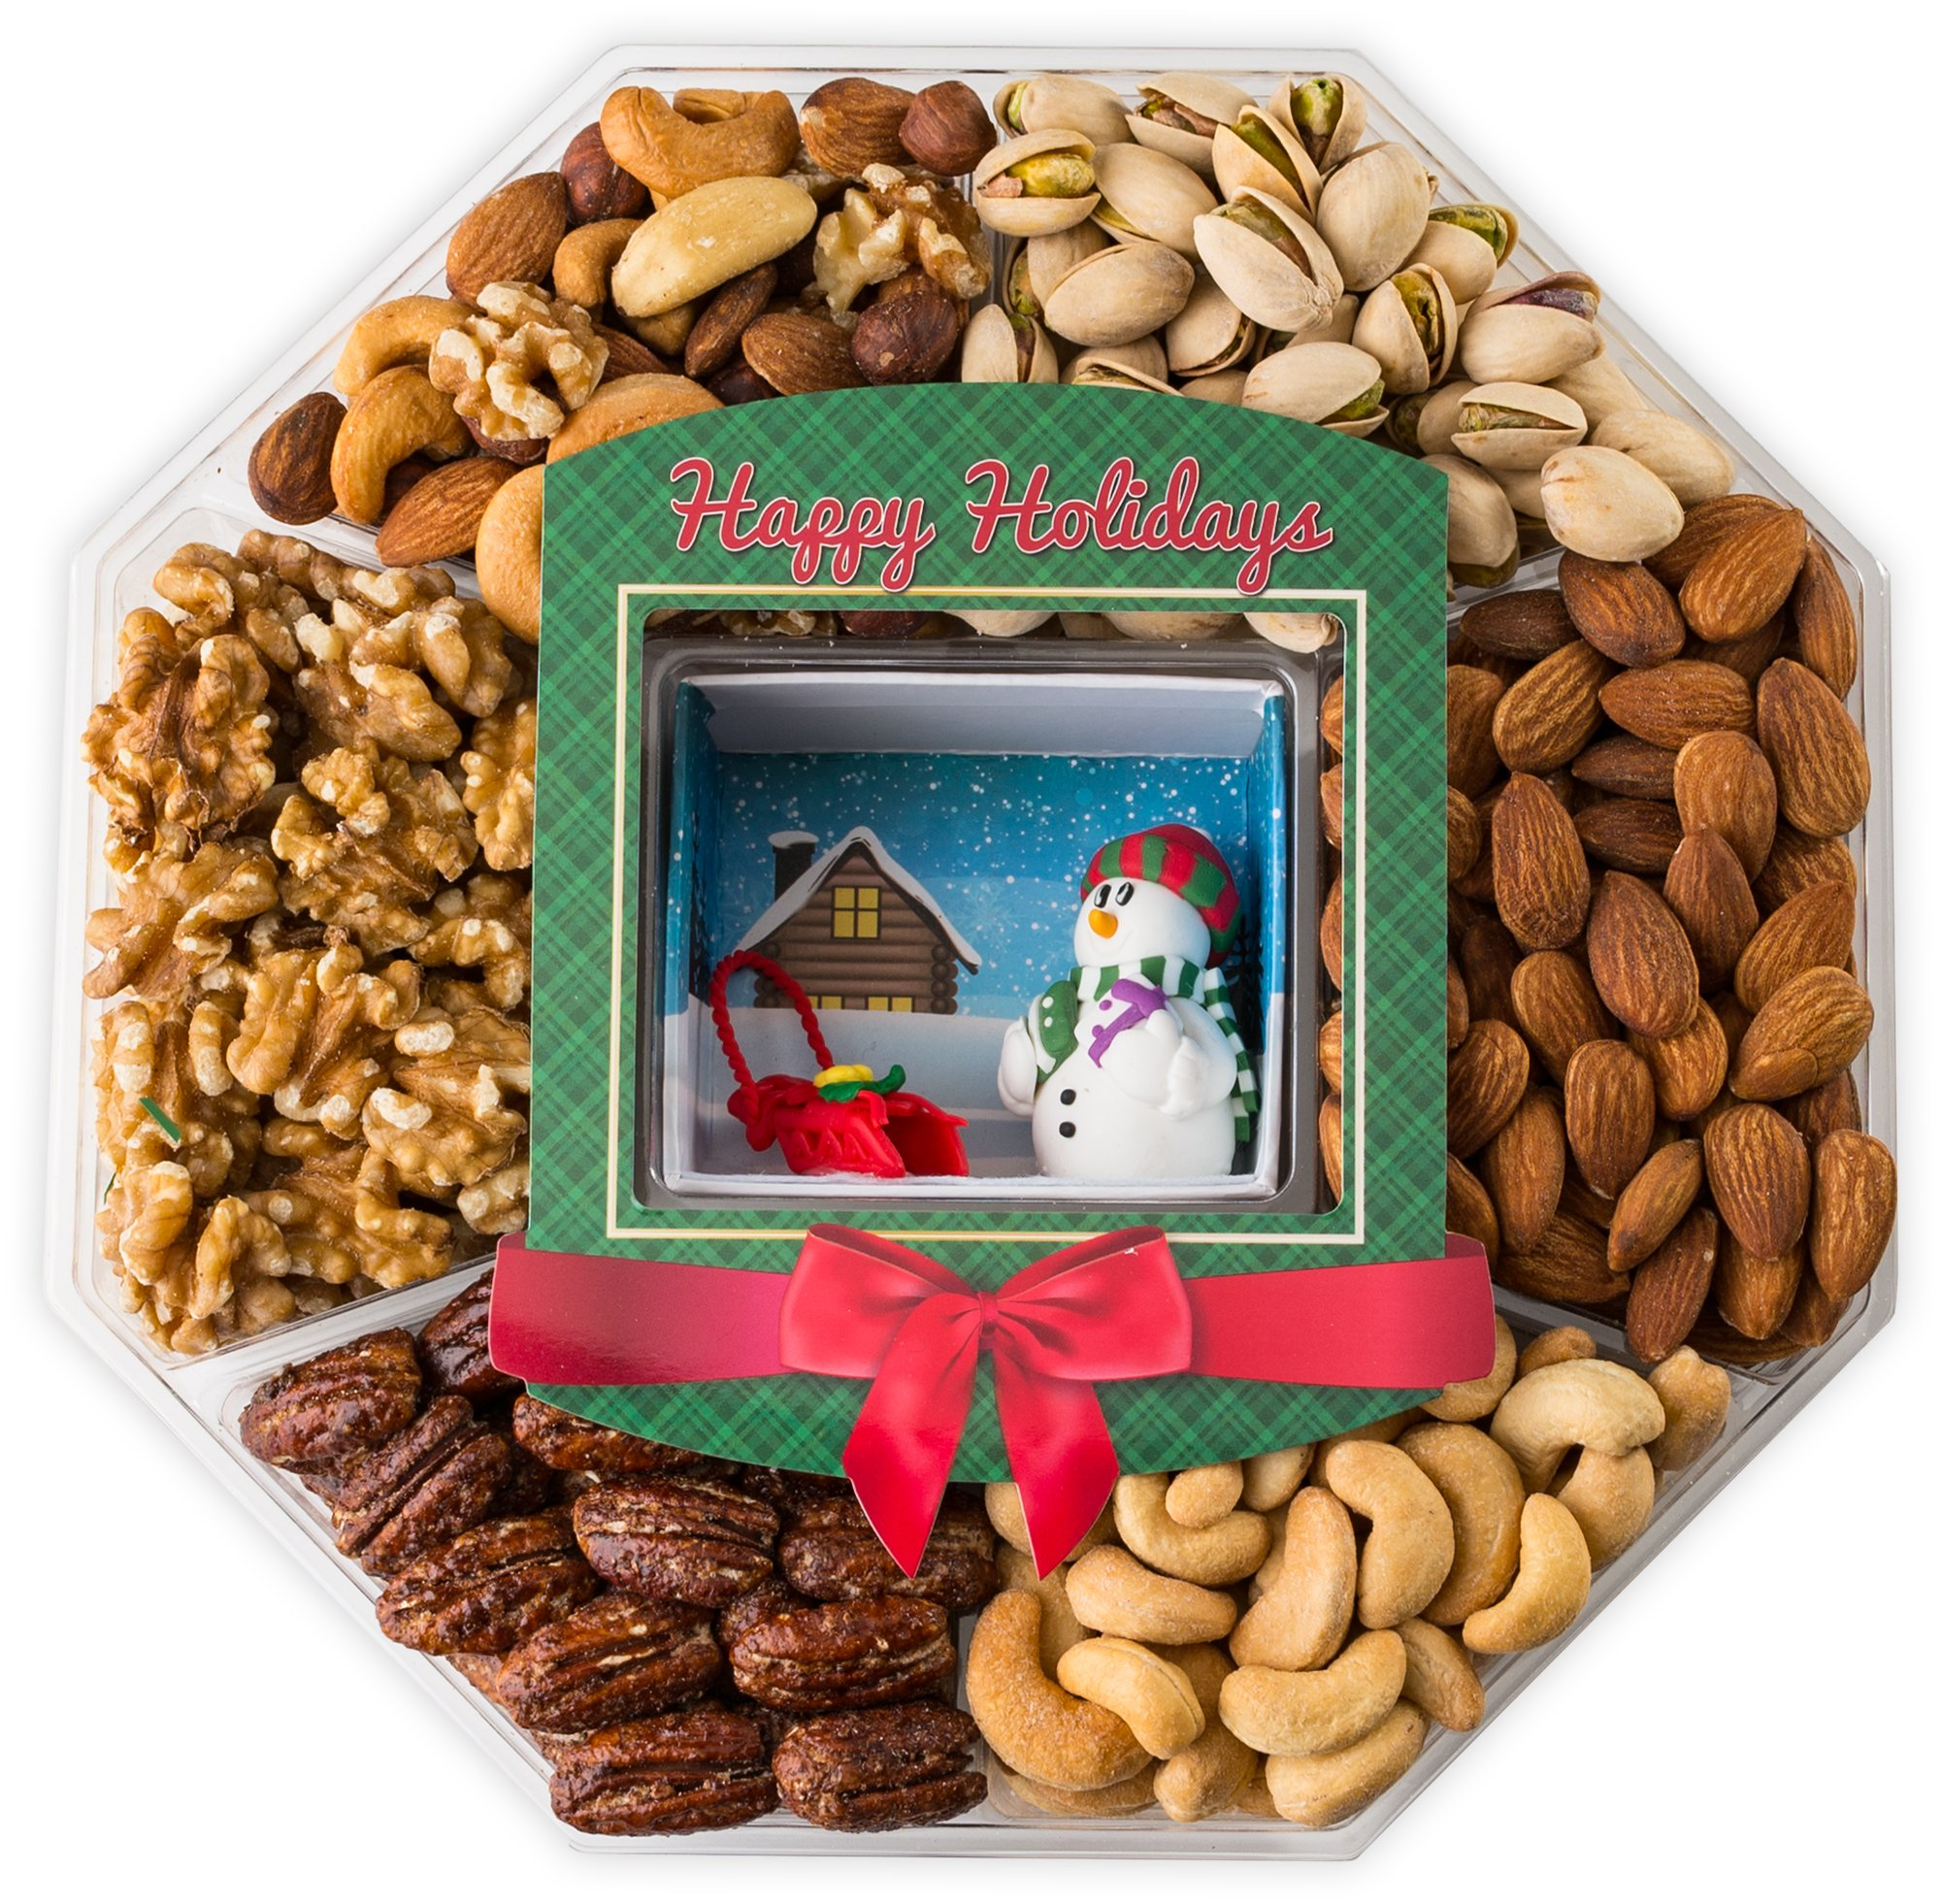 JUMBO Happy New Year Holiday Gift Baskets Fresh Variety of Gourmet Nuts - Miniature Handmade Snowman and Sleigh - Top Gifts Idea for Christmas Holiday Men Women and Family -2 Lb tray by Mini Wishes